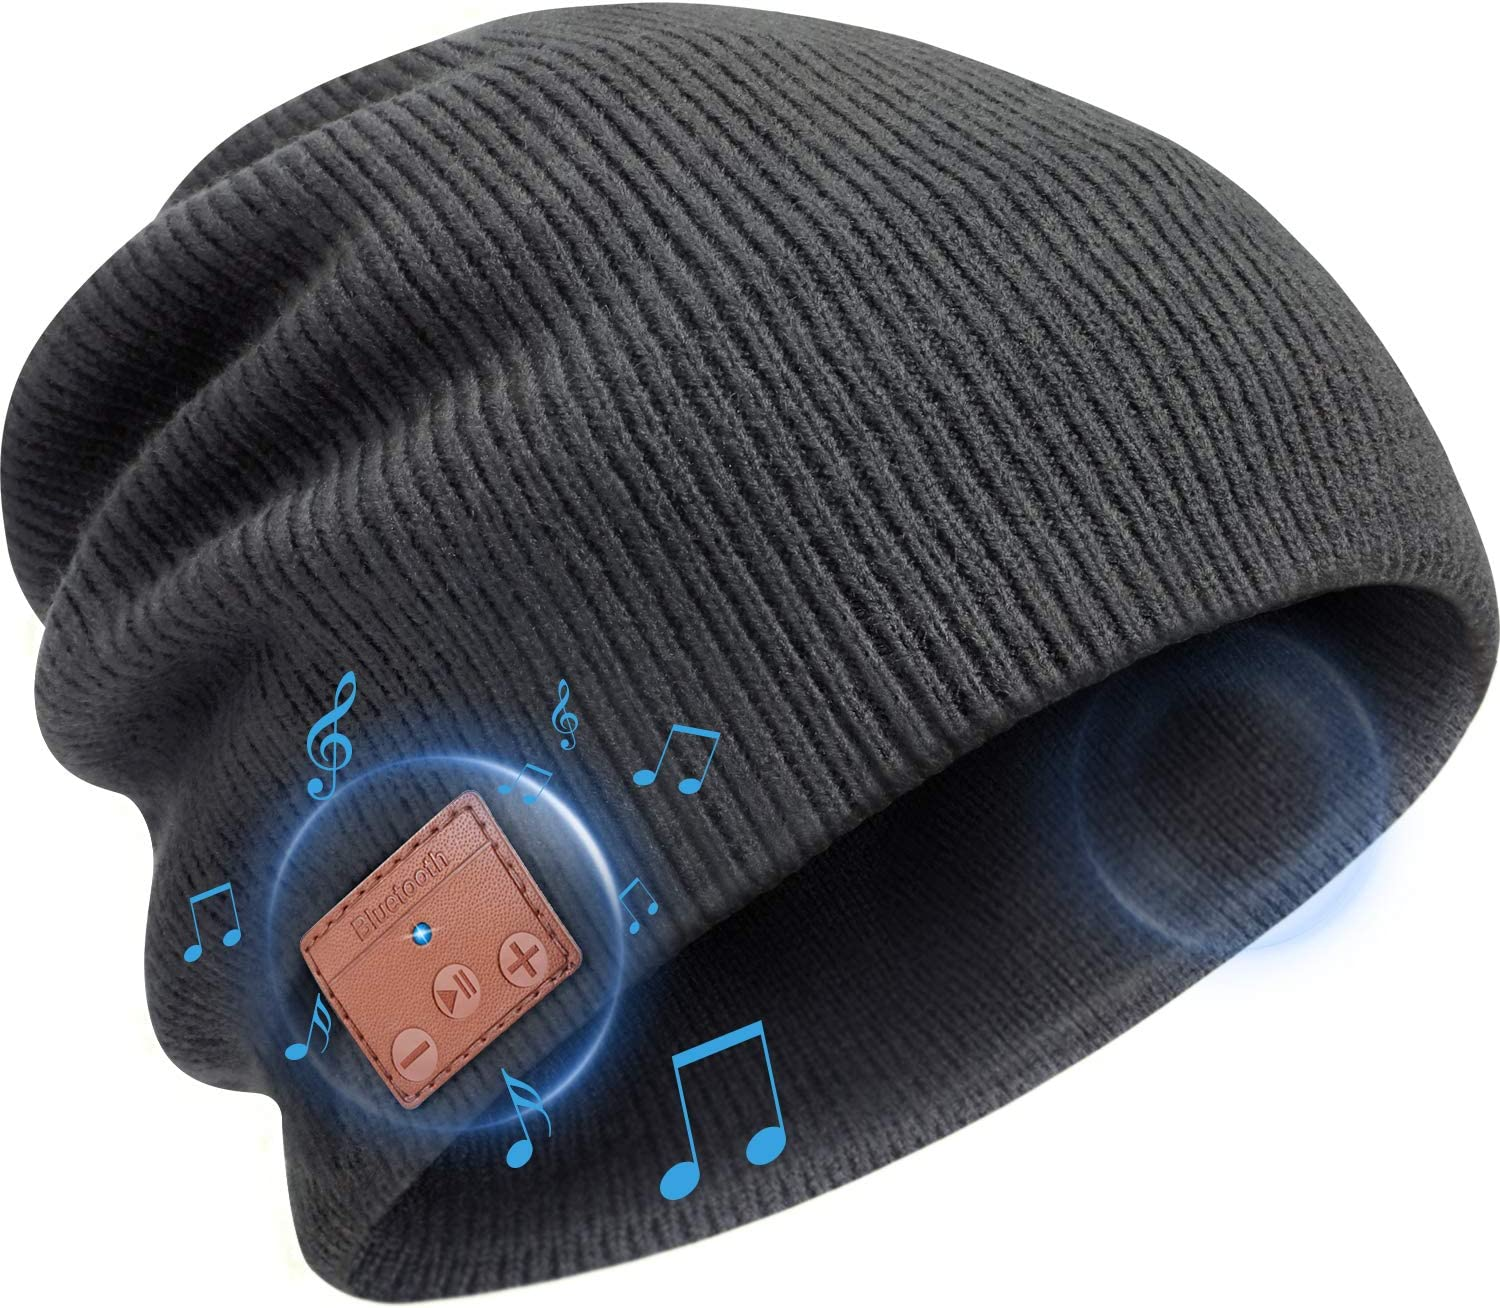 Upgraded Bluetooth 5.0 Music Hat Bluetooth Beanie Hat Teens Gifts for Men and Women Wireless Headphone Built-in HD Stereo Speakers for Christmas Stocking Stuffers